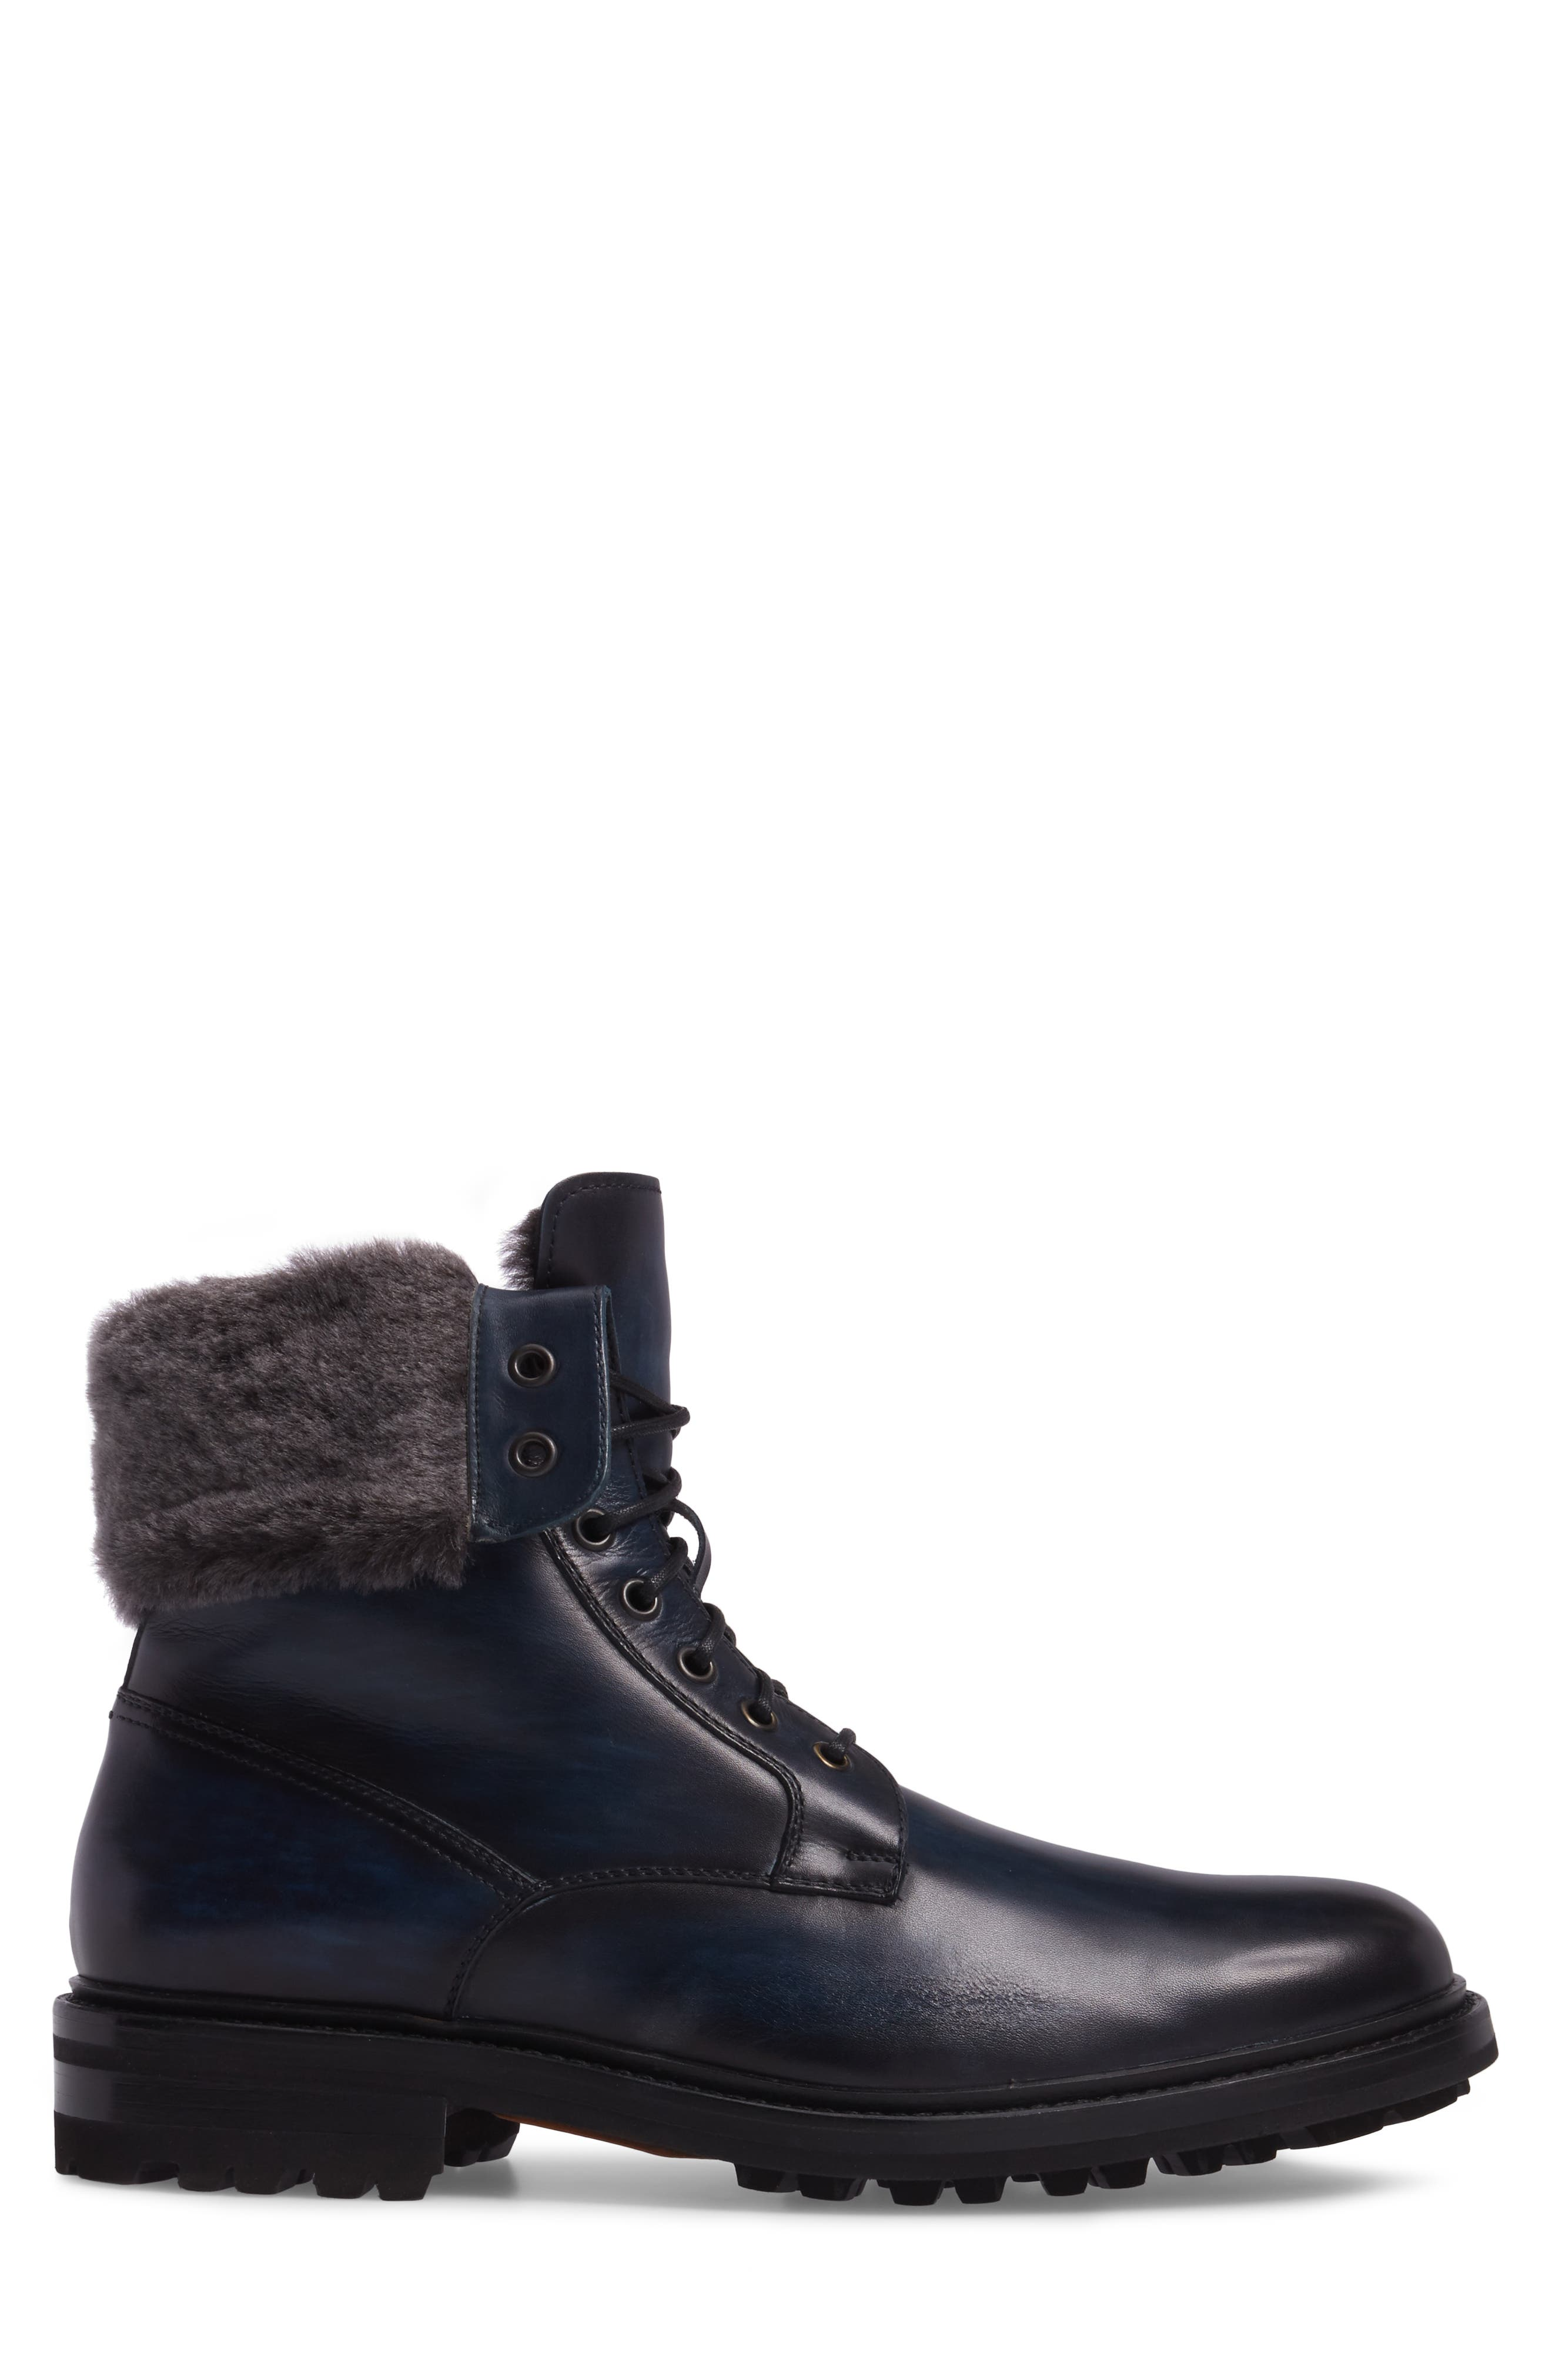 Paxton Plain Toe Boot with Genuine Rabbit Fur Cuff,                             Alternate thumbnail 3, color,                             Navy Leather